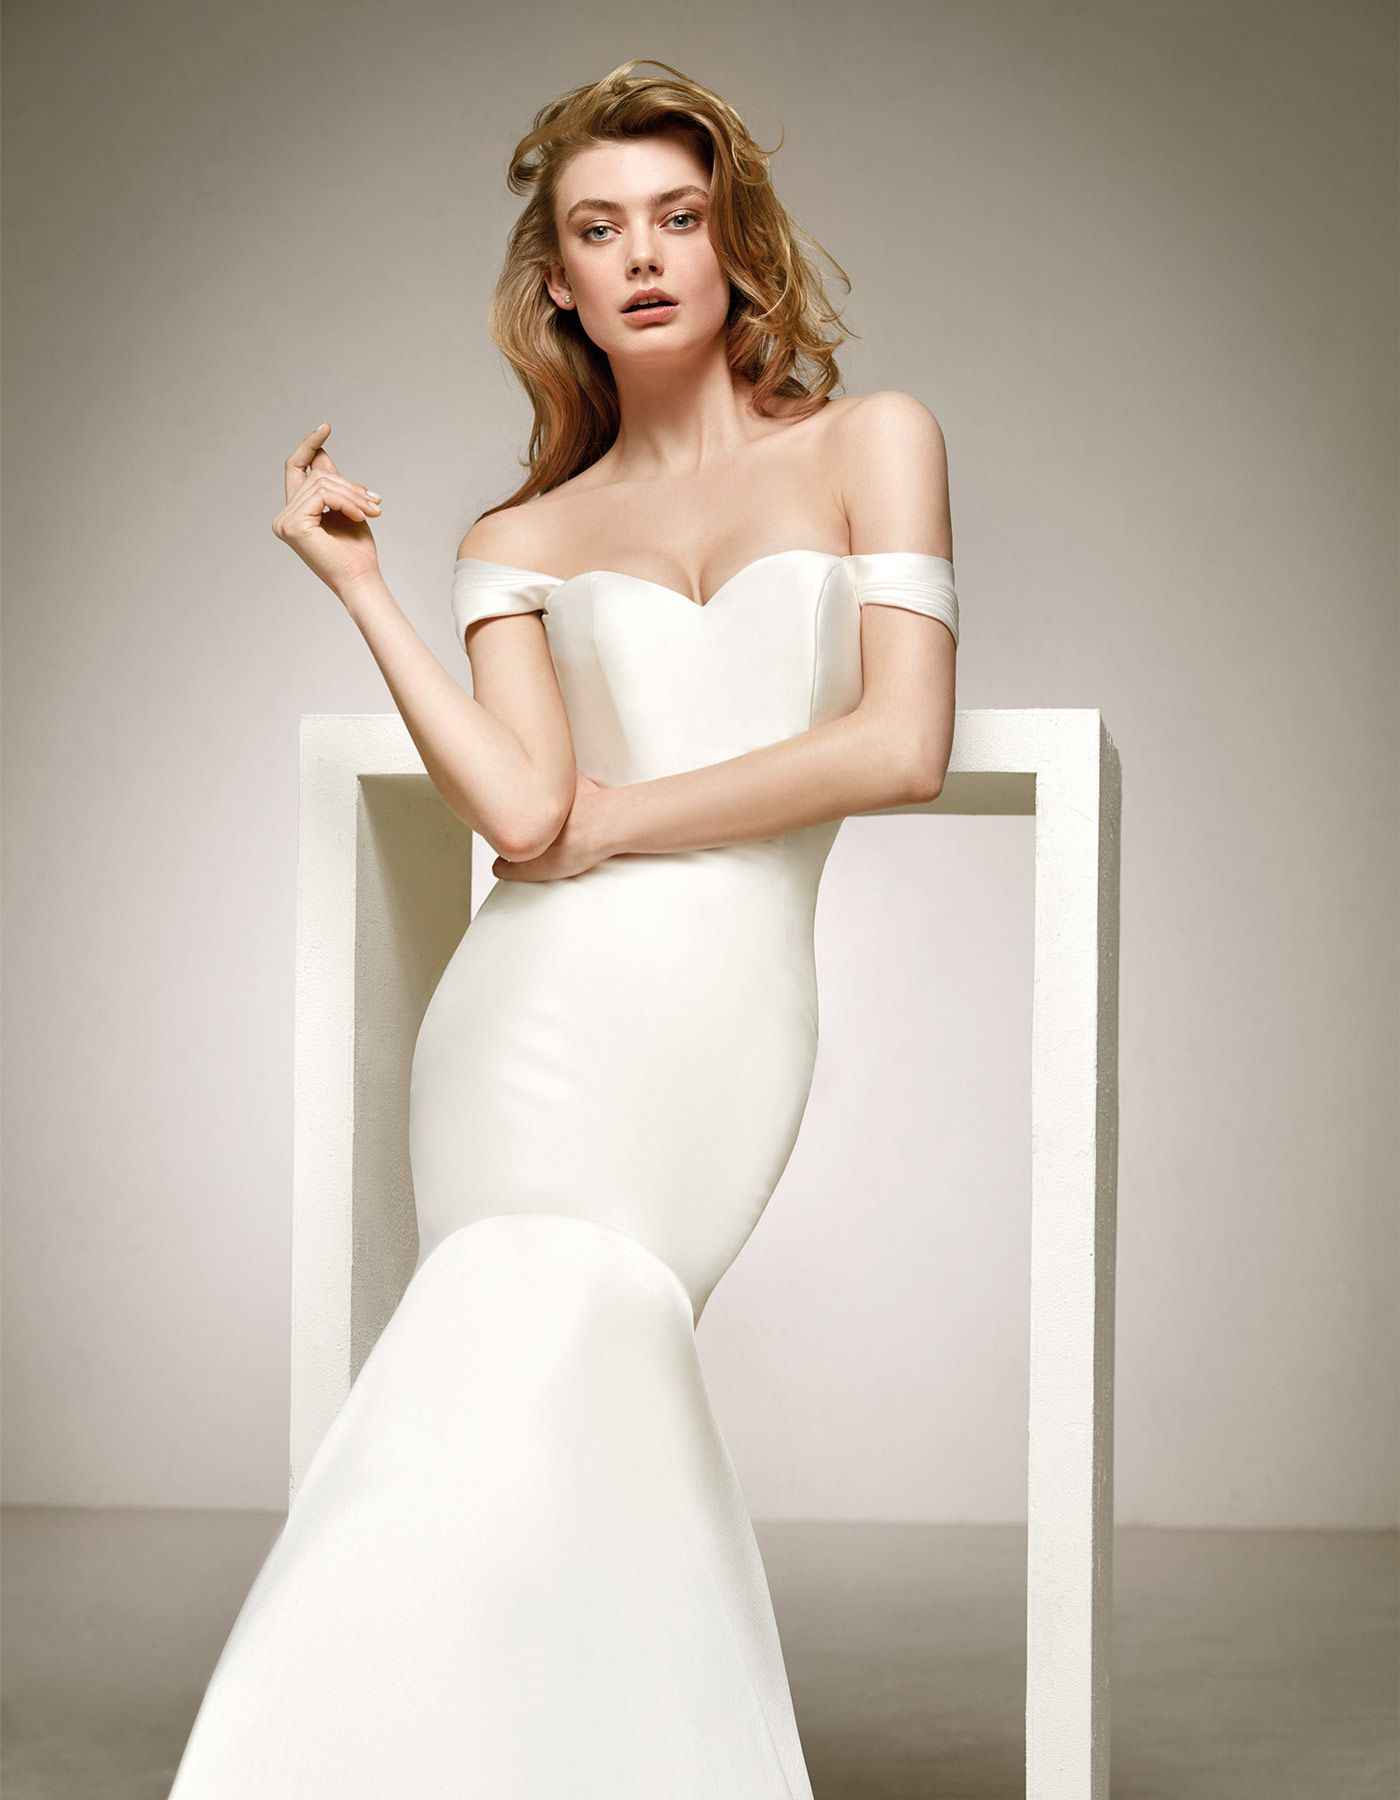 Delco by Pronovias A sensual design that showcases curves and the feminine  silhouette. A mermaid wedding dress with a sweetheart neckline and ... 6a164992c03